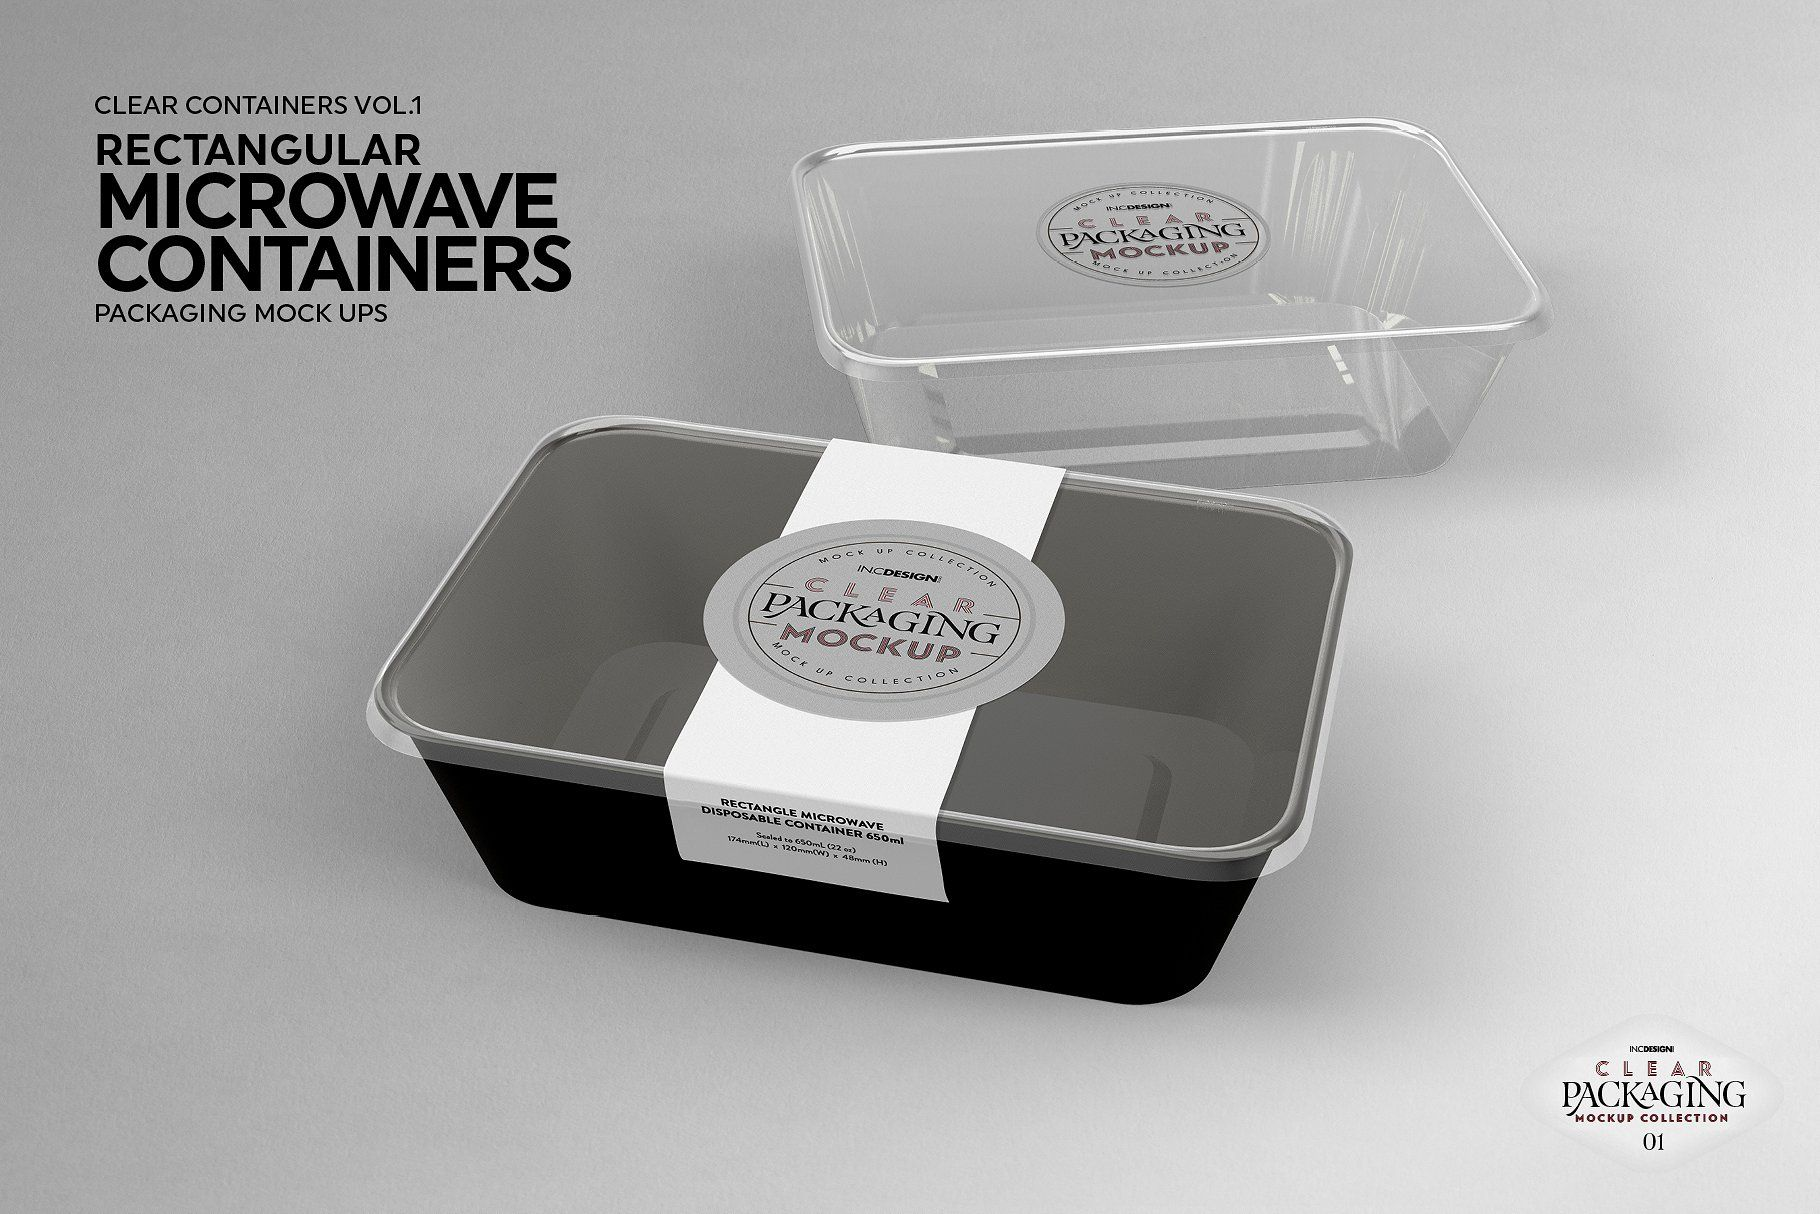 Download Microwave Containers Packagingmockup Microwavable Containers Packaging Mockup Clear Container